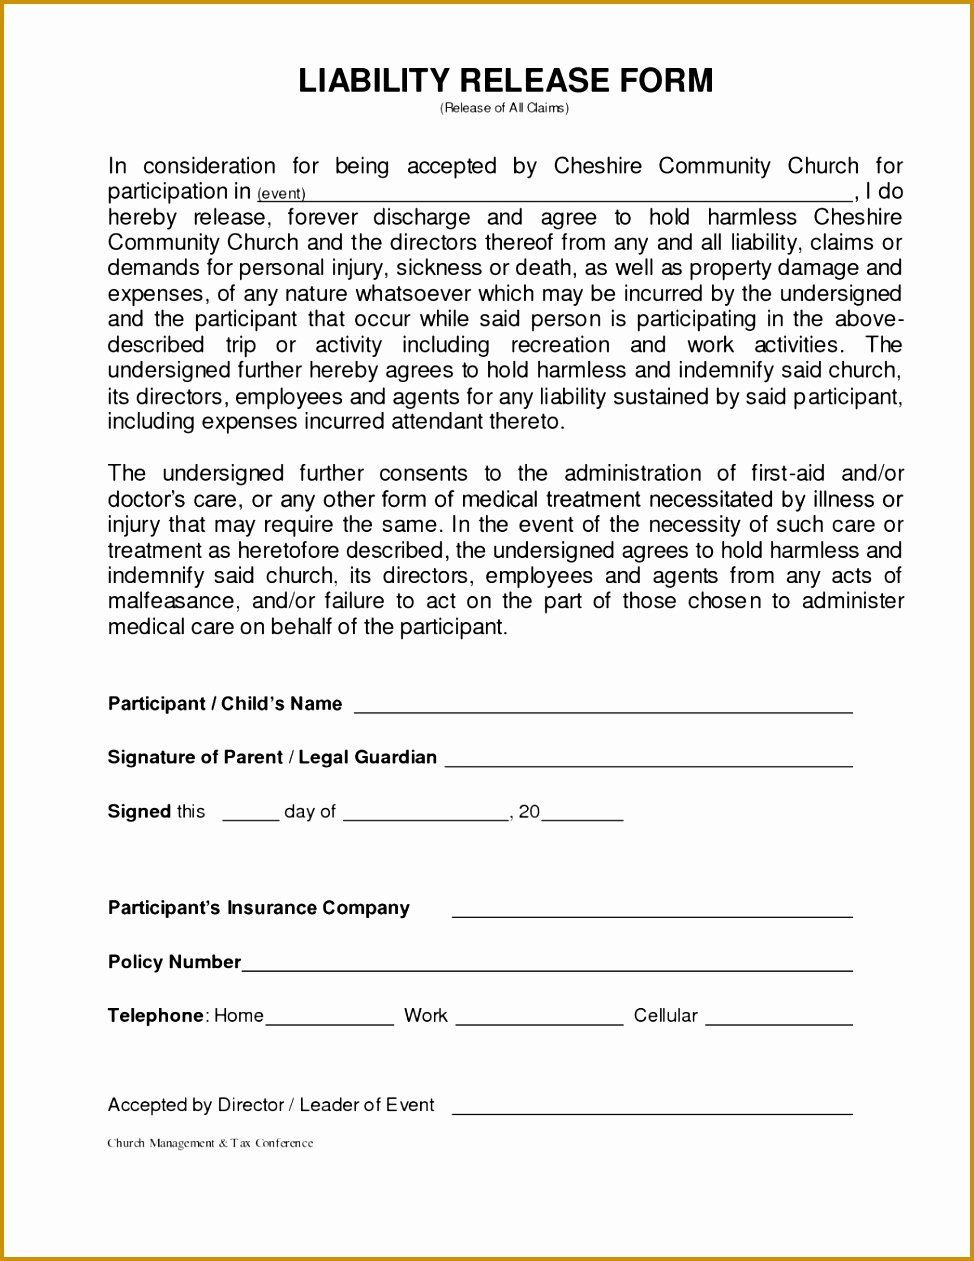 Standard Media Release Form Template Lovely 5 Standard Model Release Form Template Liability Waiver Templates General Liability